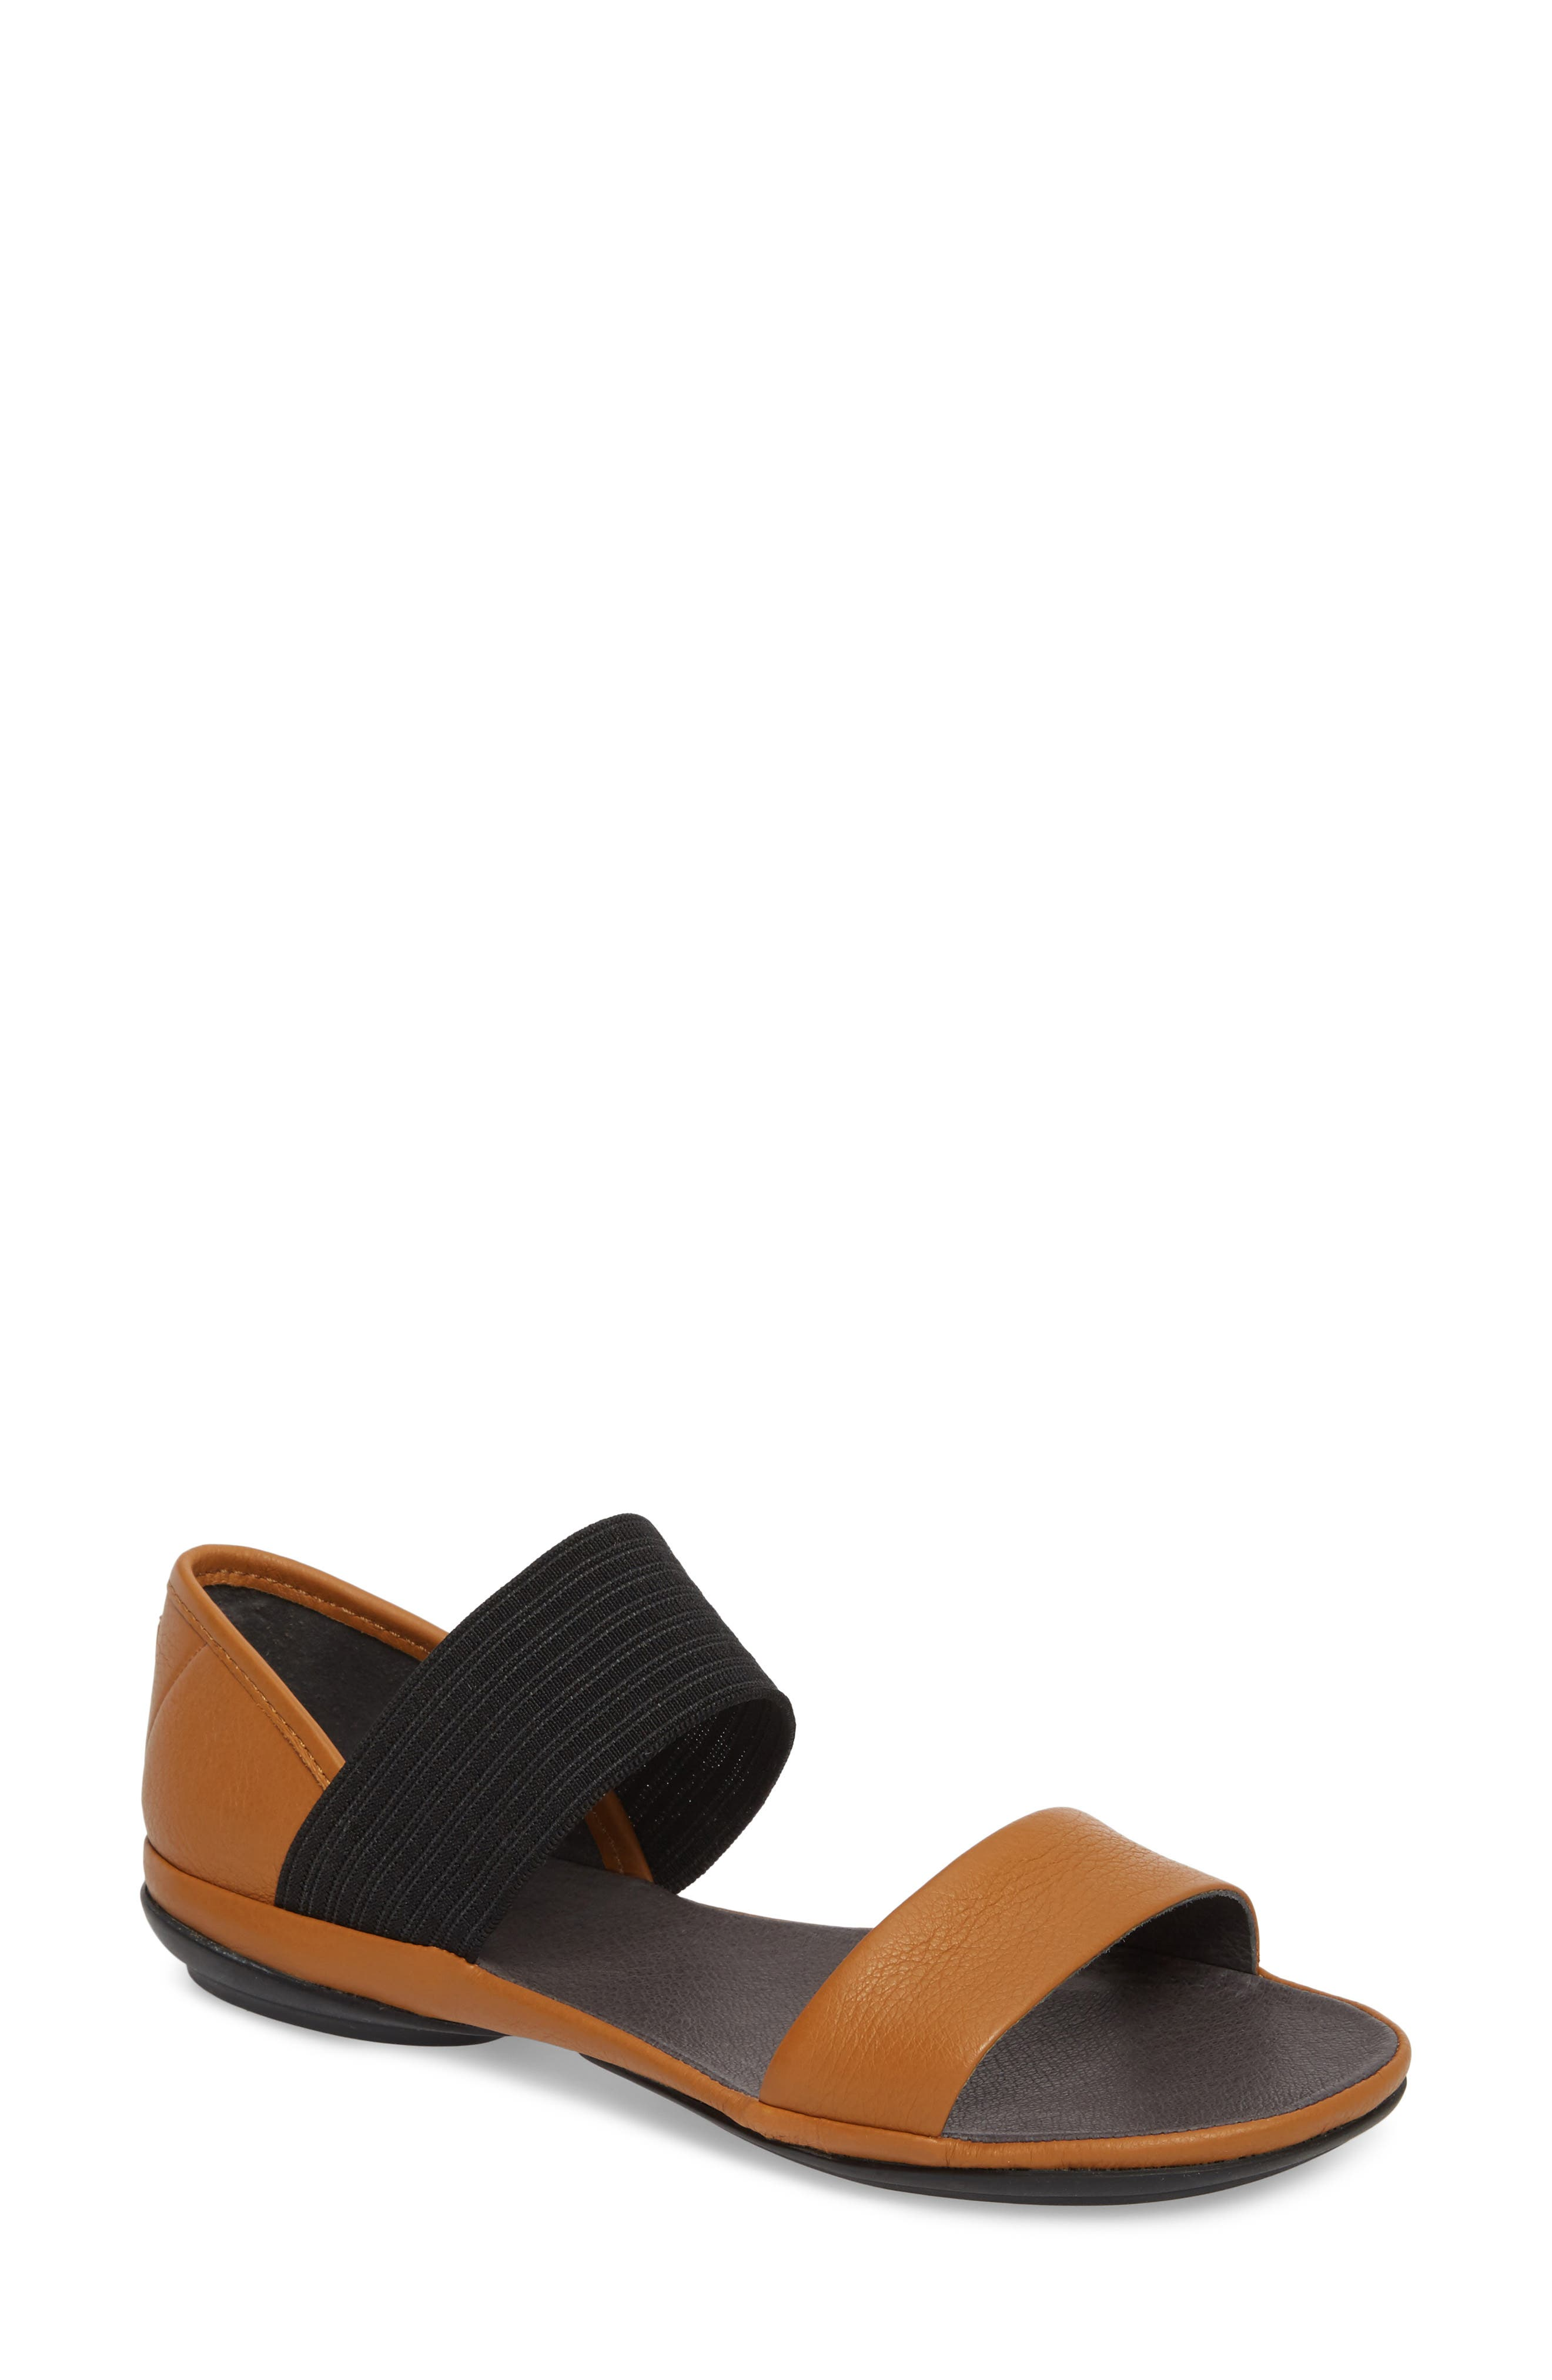 Right Nina Sandal,                         Main,                         color, Rust/ Copper Leather